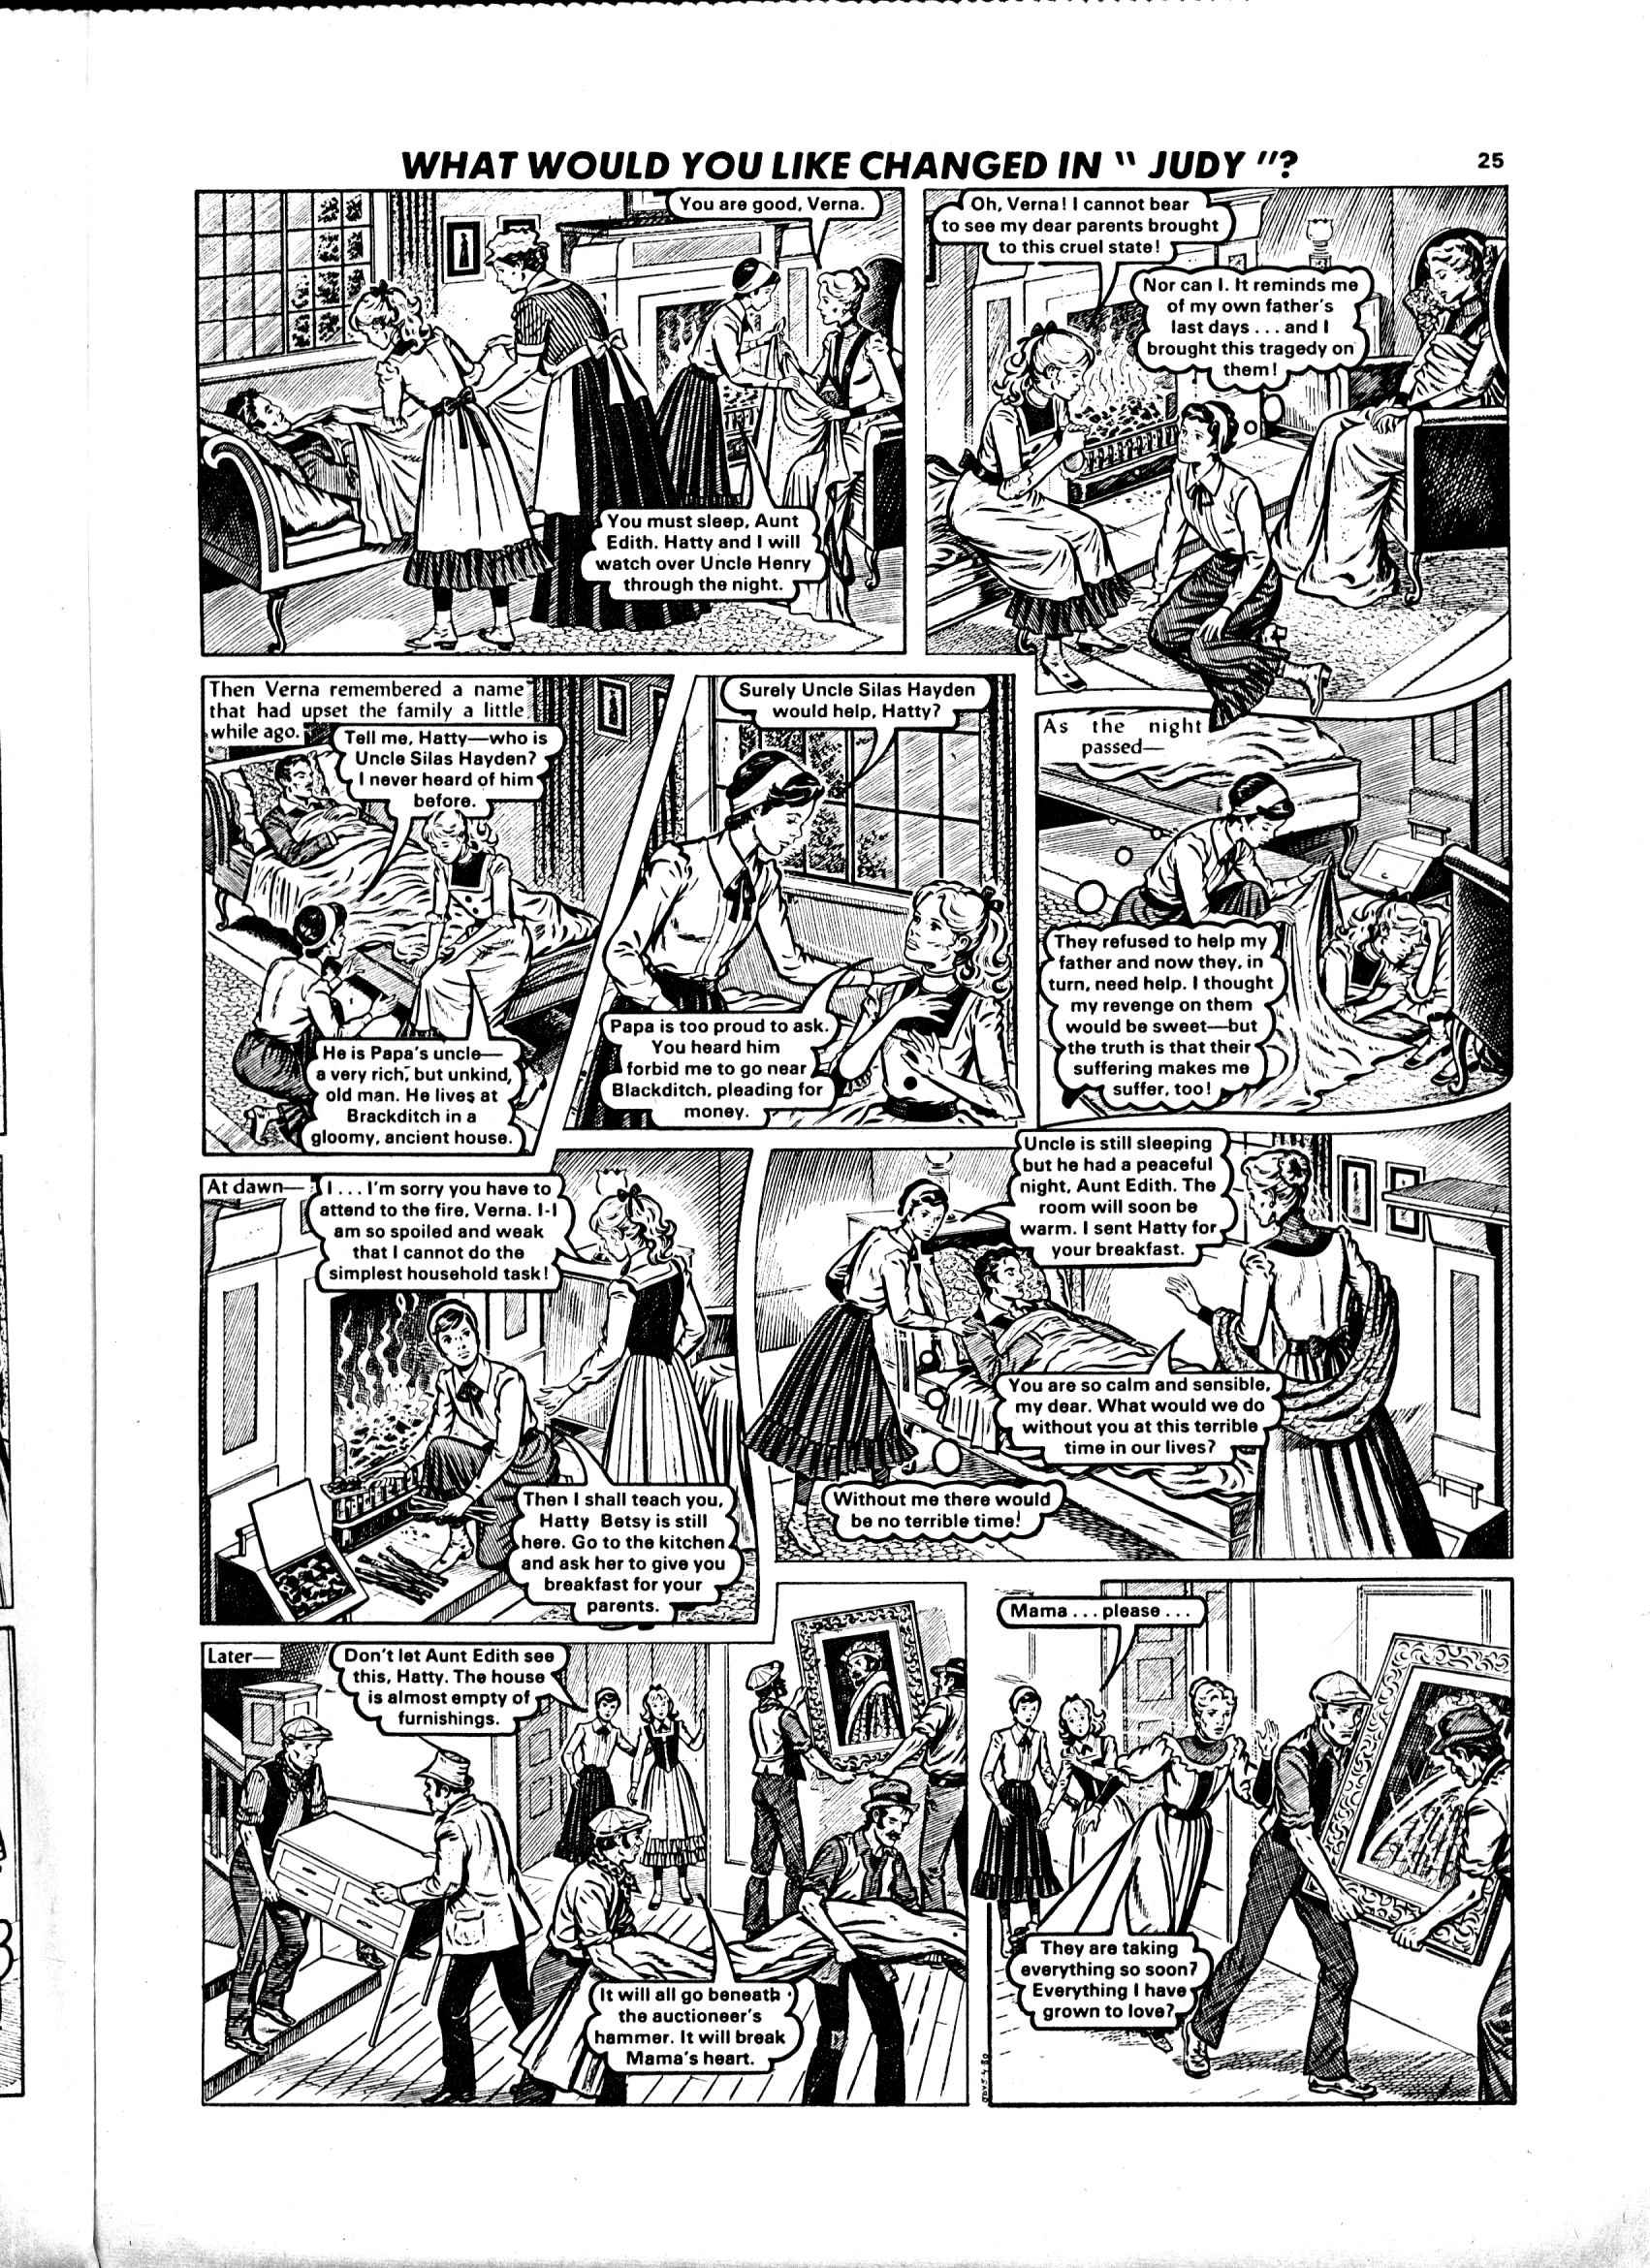 Read online Judy comic -  Issue #56 - 25